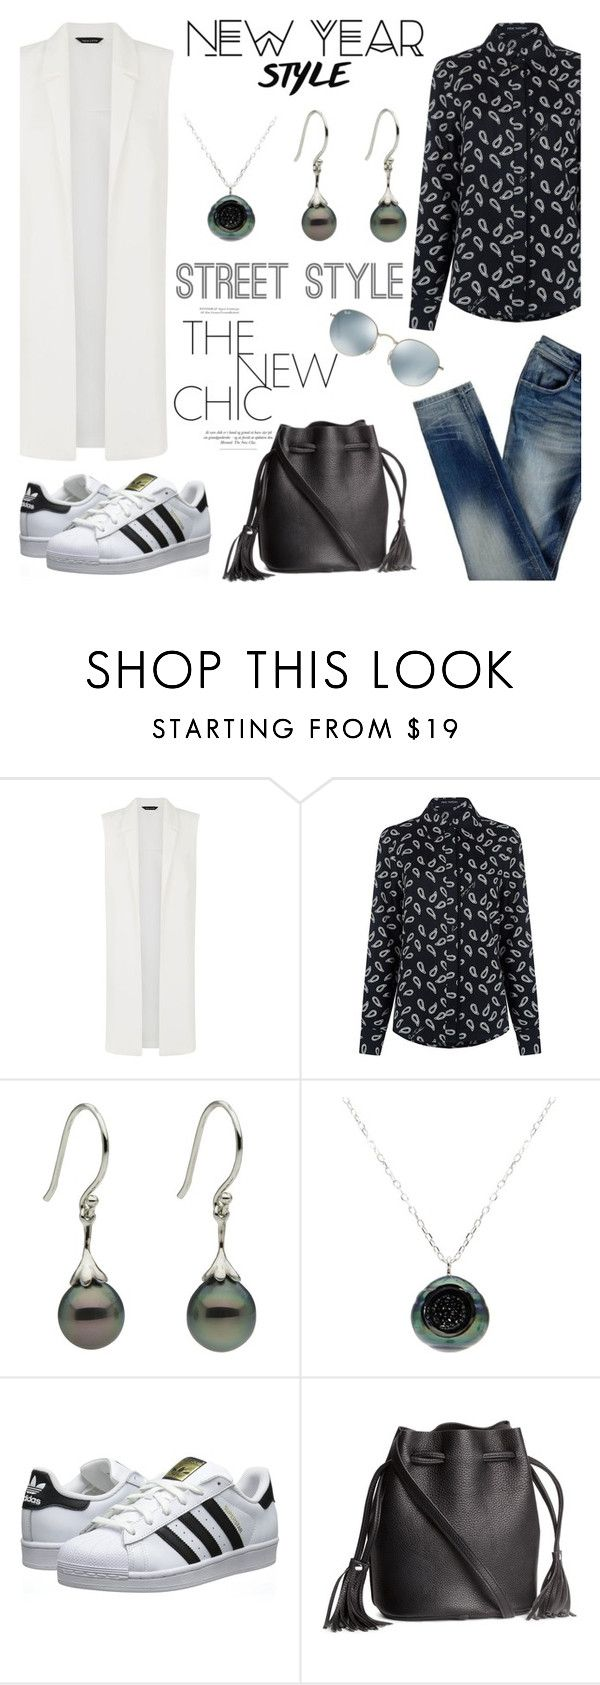 """""""Street style chic!"""" by littlehjewelry ❤ liked on Polyvore featuring Pink Tartan, Pearl & Black, adidas Originals, H&M, Ray-Ban, contestentry, pearljewelry, styleresolution and littlehjewelry"""